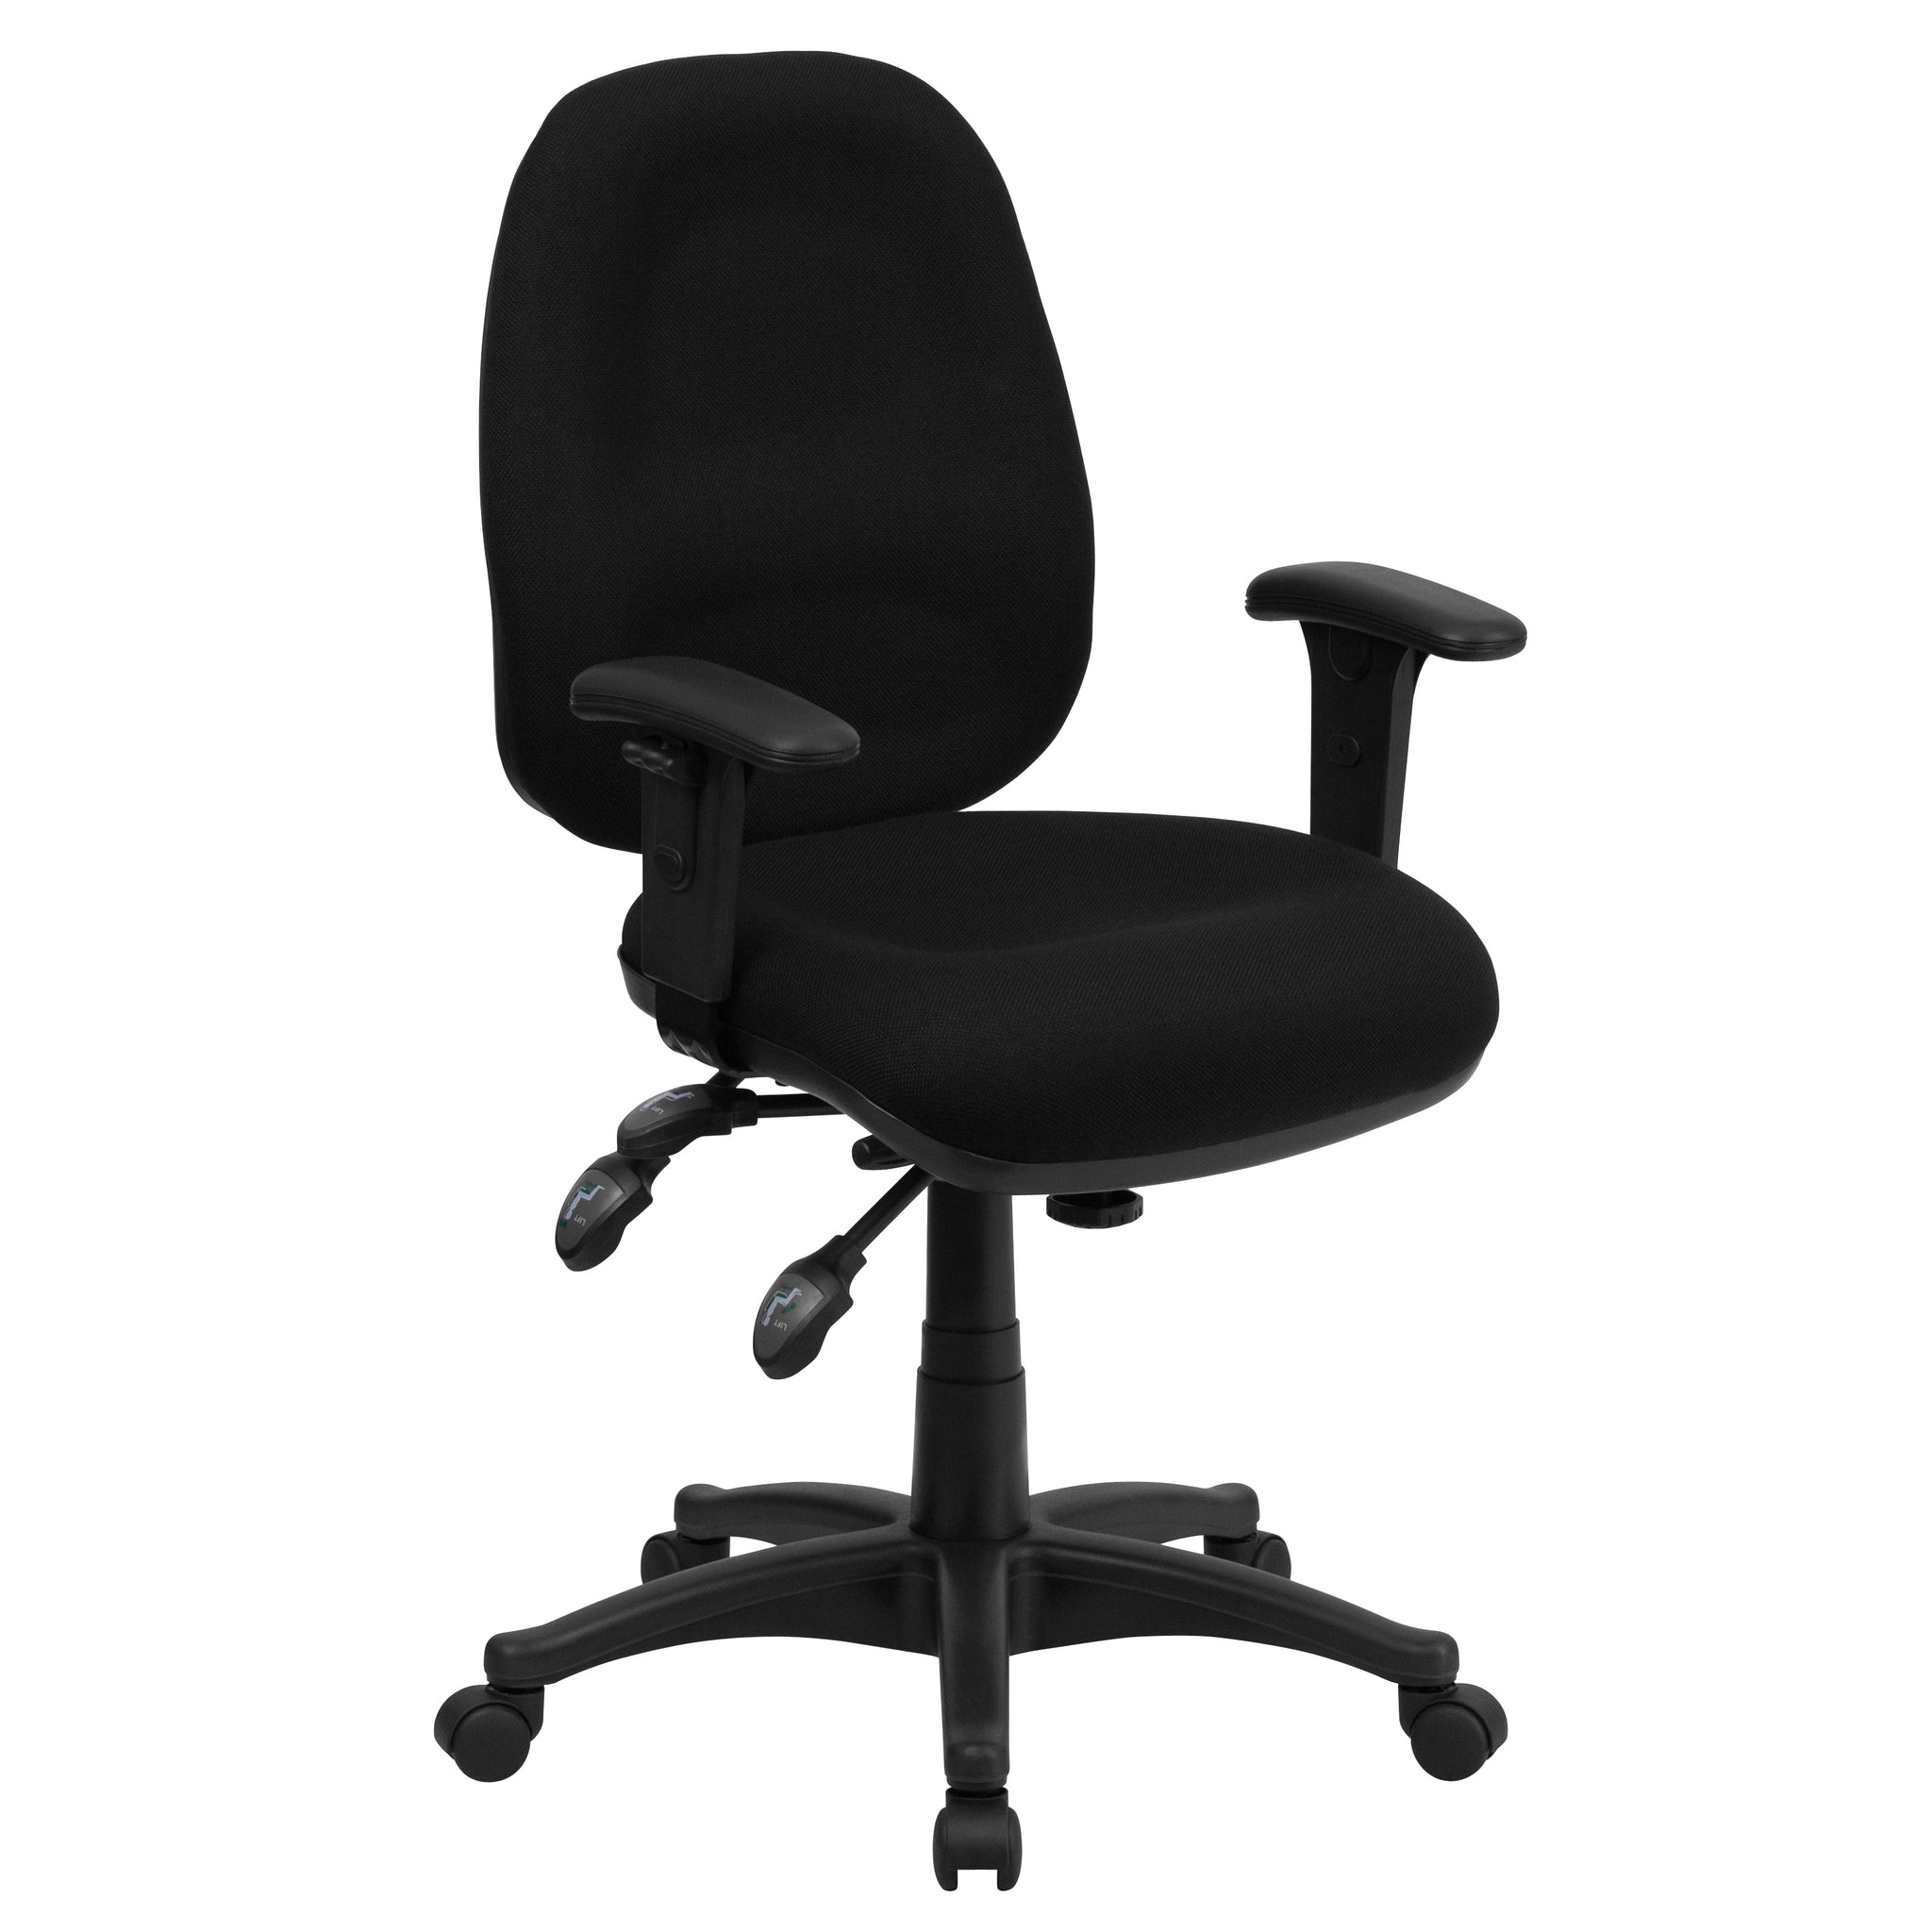 Mid-Back Multi-Functional Fabric Executive Swivel Office Chair: Black